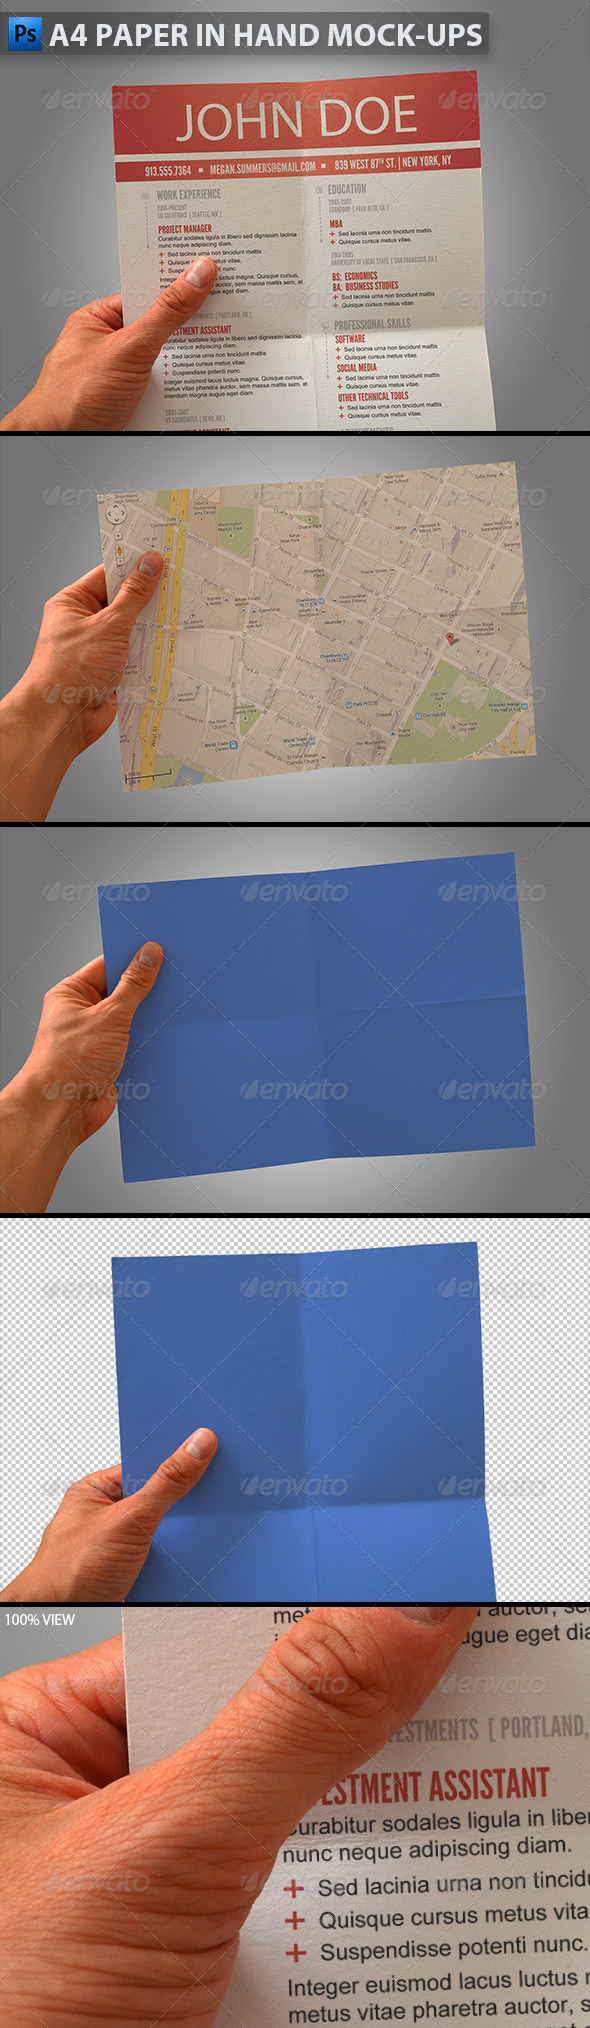 GraphicRiver A4 Paper in Hand Mock-ups 5948925